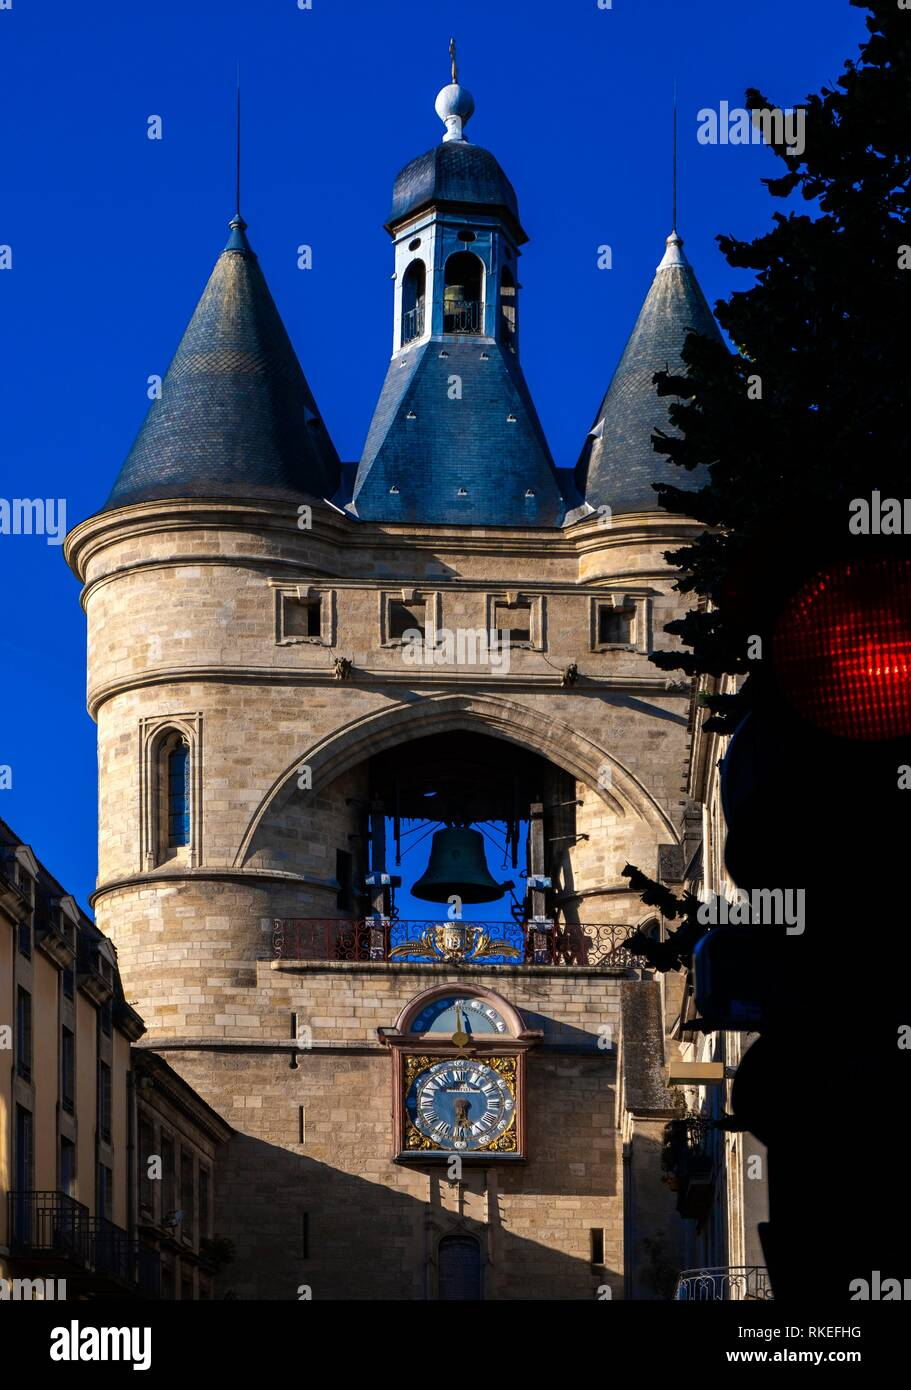 France, Nouvelle Aquitaine, Gironde, ''Grosse Cloche'' on Saint Eloï's gate at Bordeaux. - Stock Image